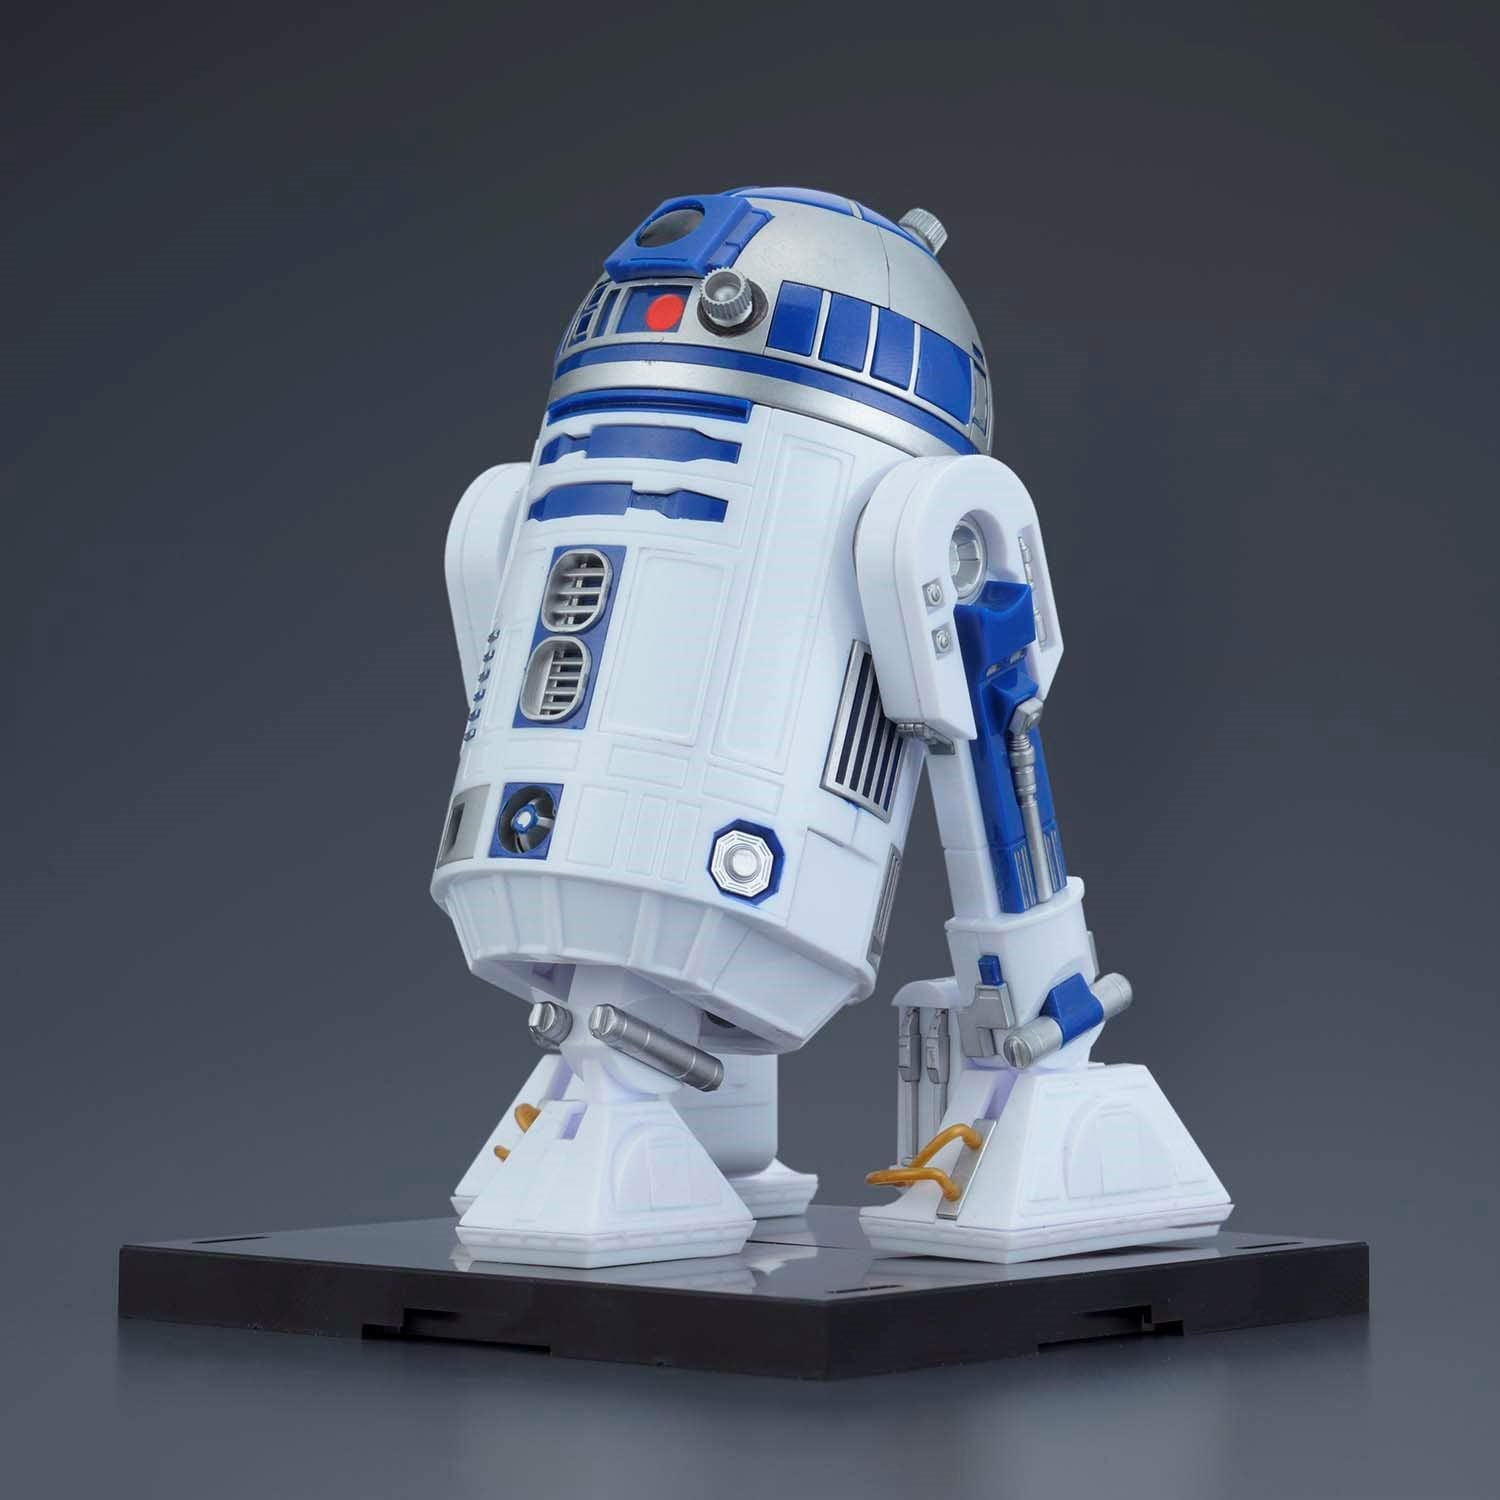 Bandai 1/12 R2-D2 (Rocket Booster Ver.) Star Wars Droid Collection